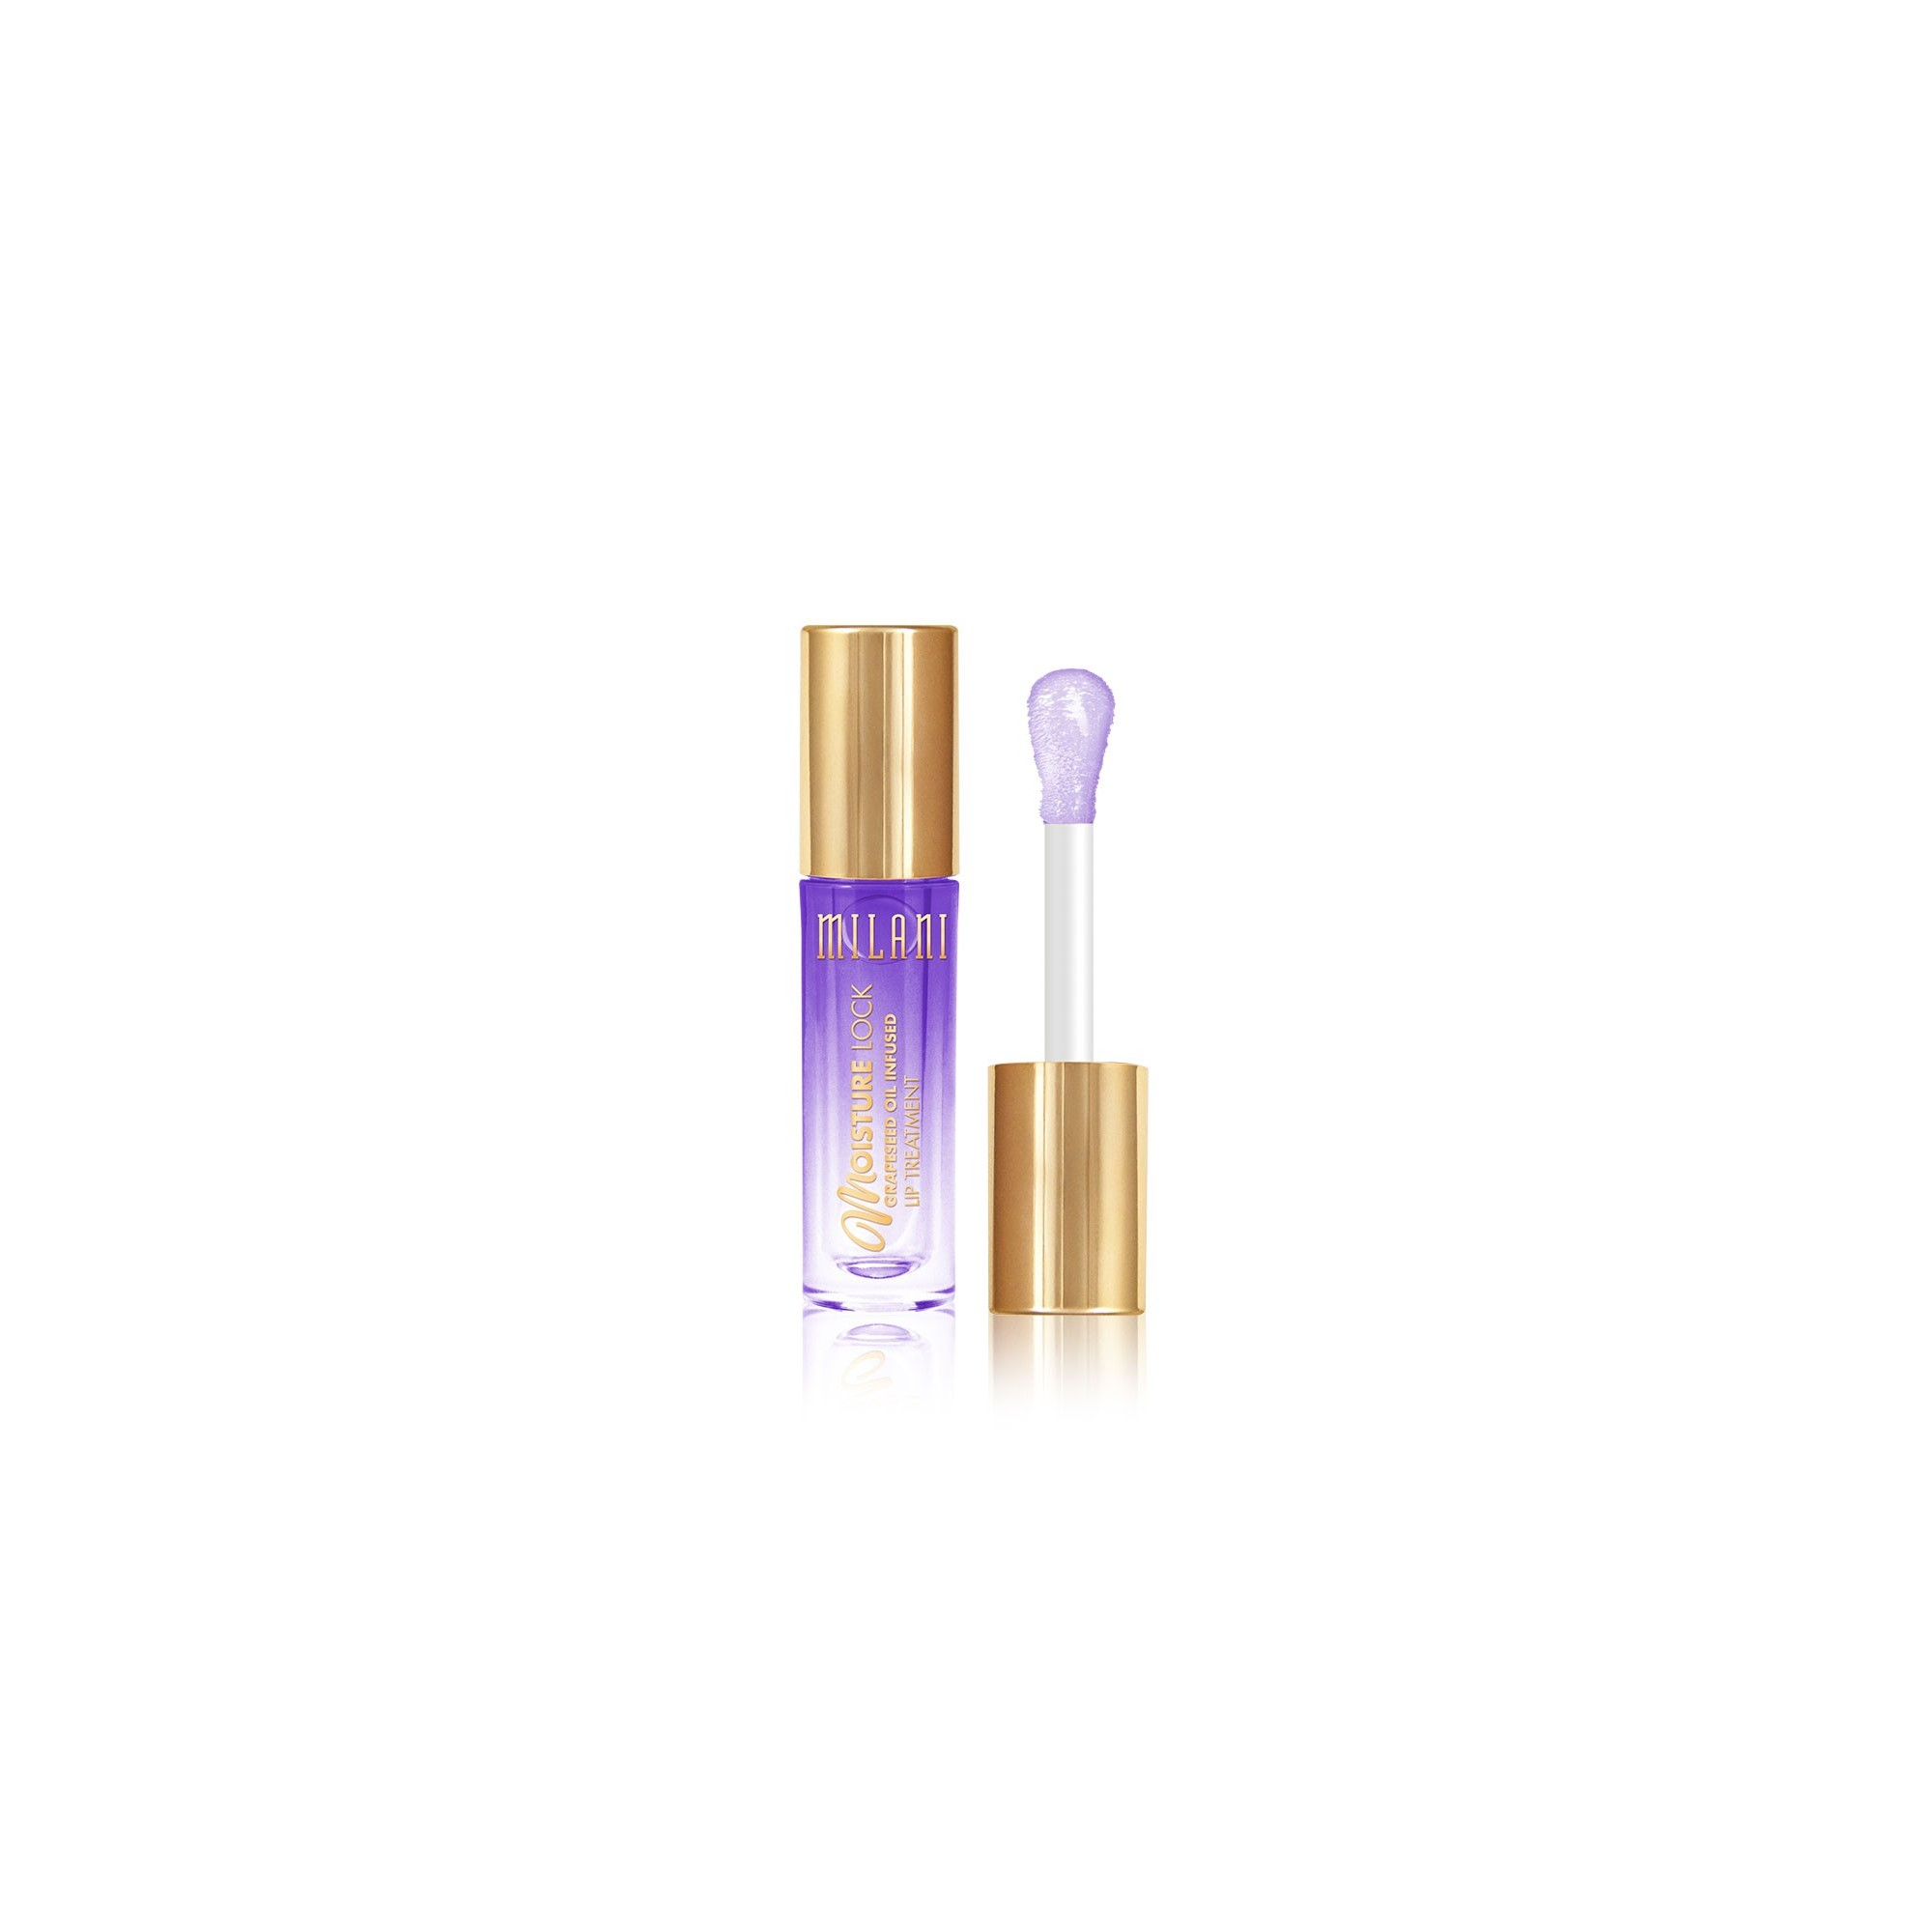 Milani Moisture Lock Oil Infused Lip Treatment Conditioning Grapeseed